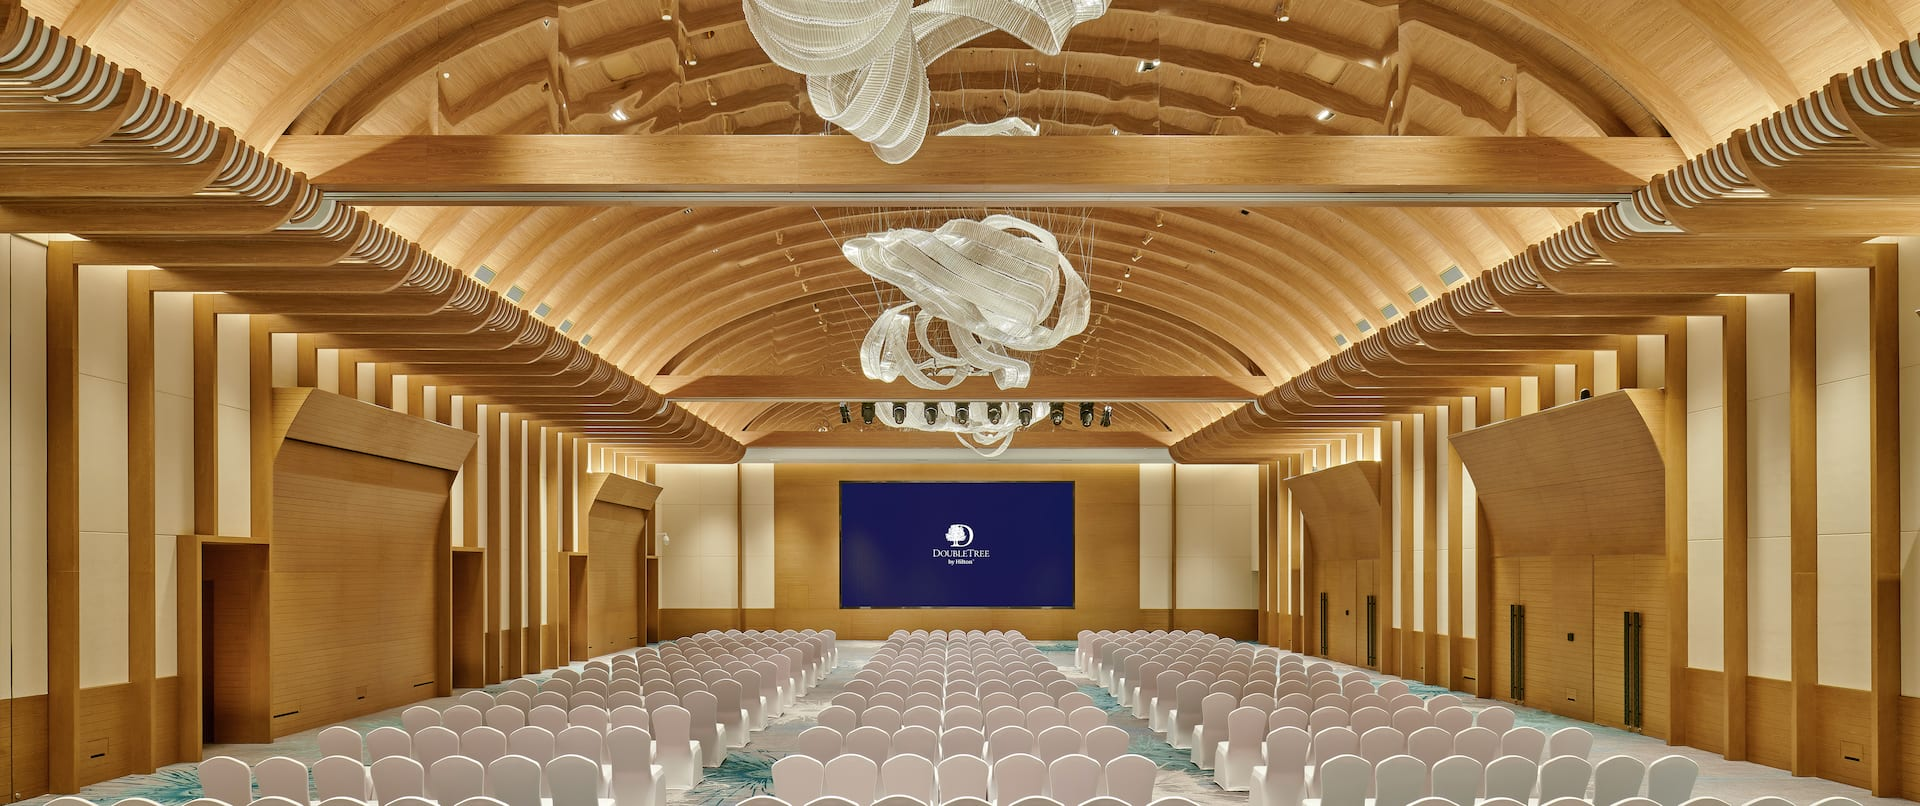 white covered chairs pointed towards a presentation screen in a ballroom